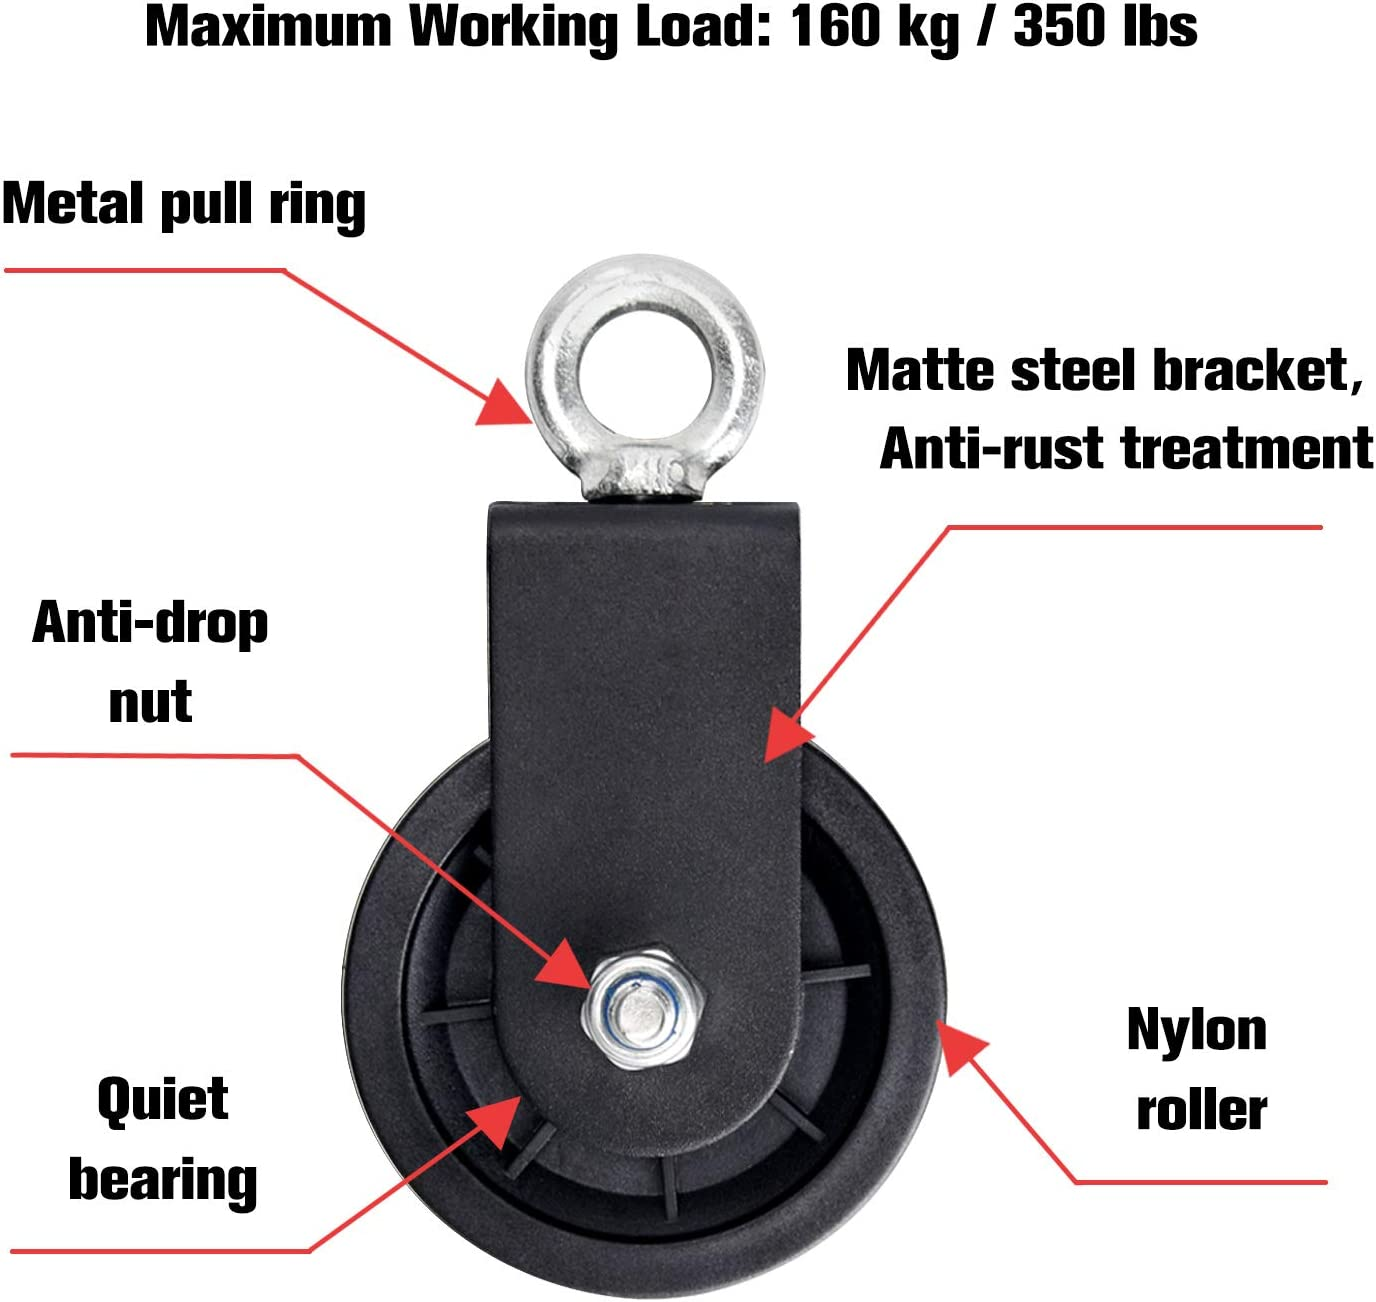 360 Degree Rotation Traction Wheel Pulley Cable Machine Attachment for Lifting Blocks TOBWOLF 90mm Silent Nylon Fitness Pulley Wheel Cable Machine Gym Equipment Ladder Lift DIY Home Projects